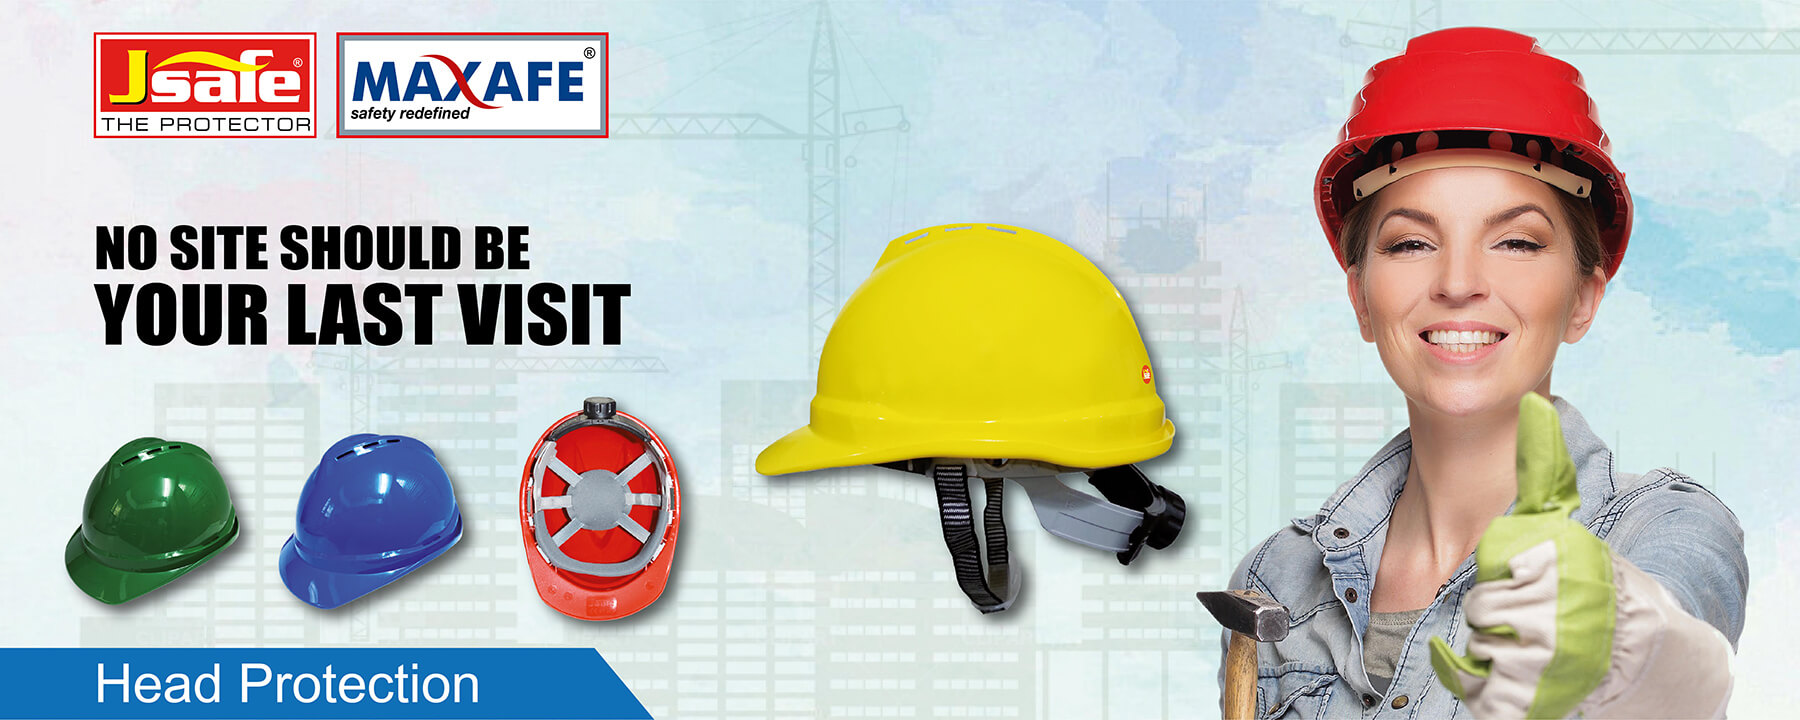 Industrial Safety Protection Equipment Suppliers | PPE